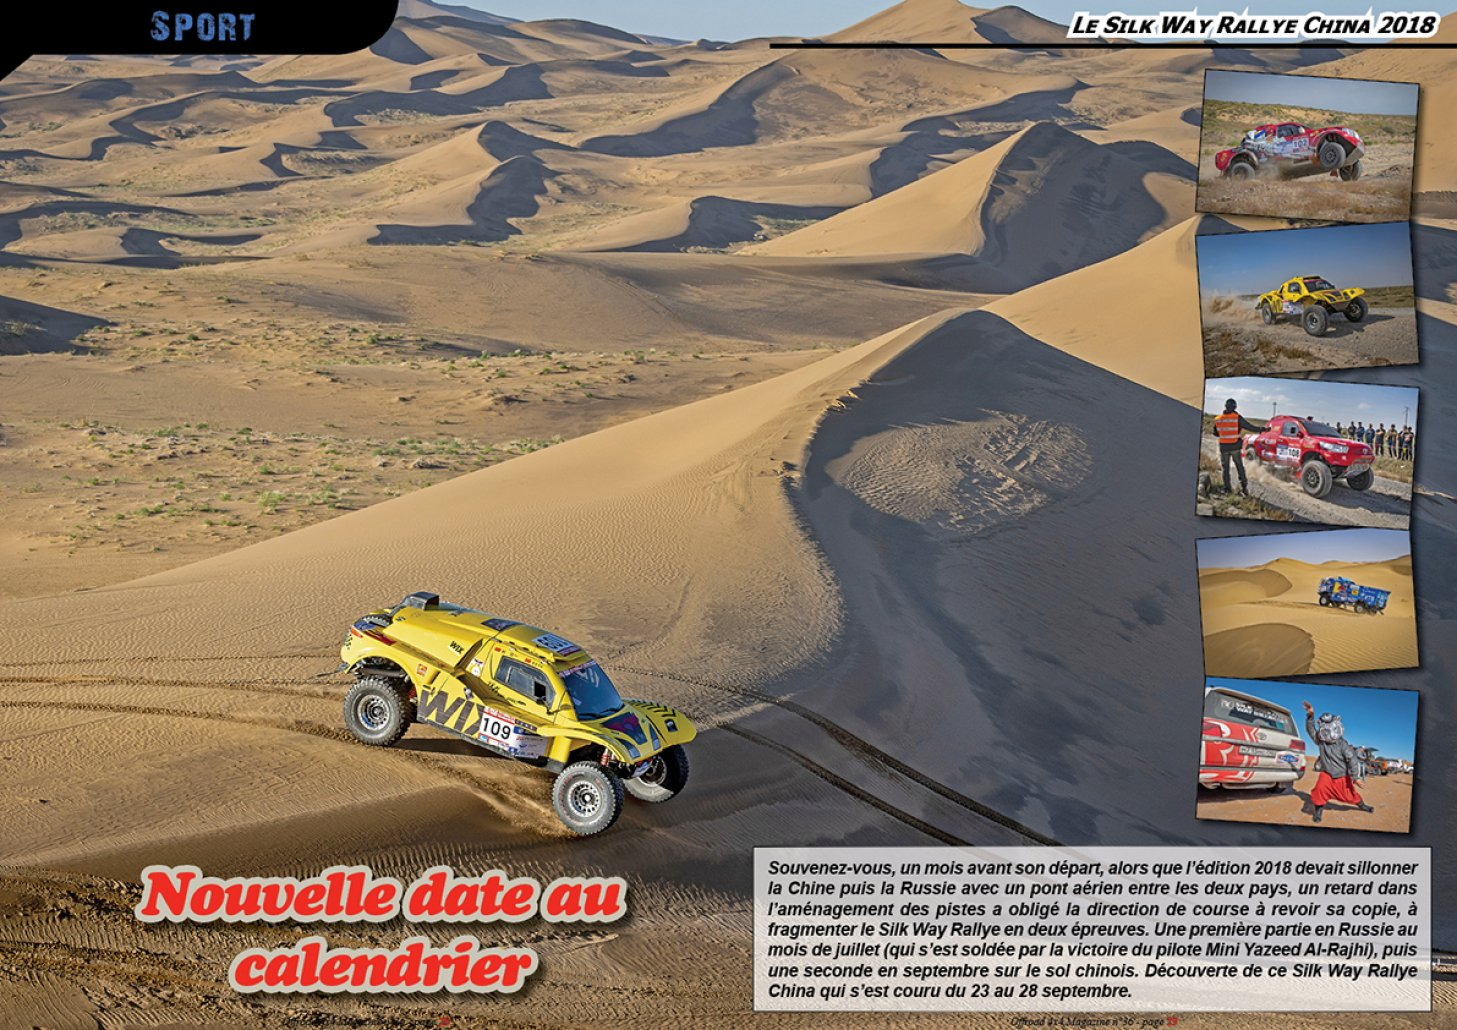 Le Silk Way Rallye China 2018